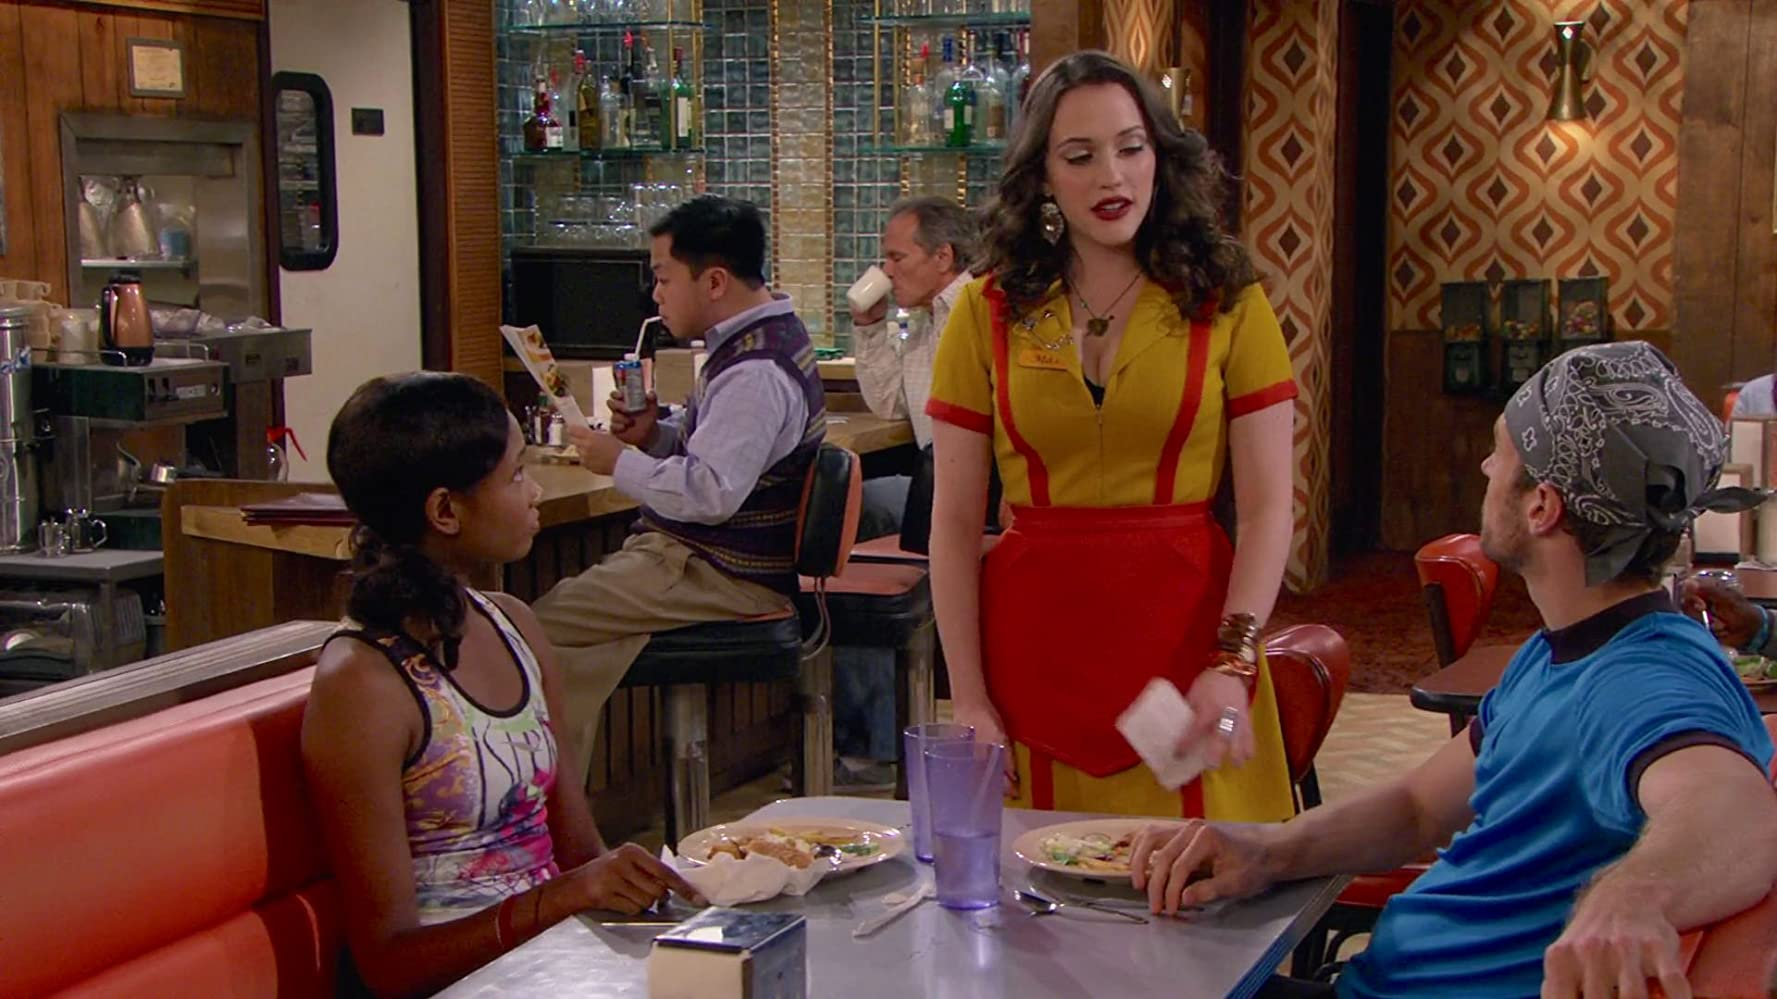 Kat Dennings, John Ruby, and Ajarae Coleman in 2 Broke Girls (2011)